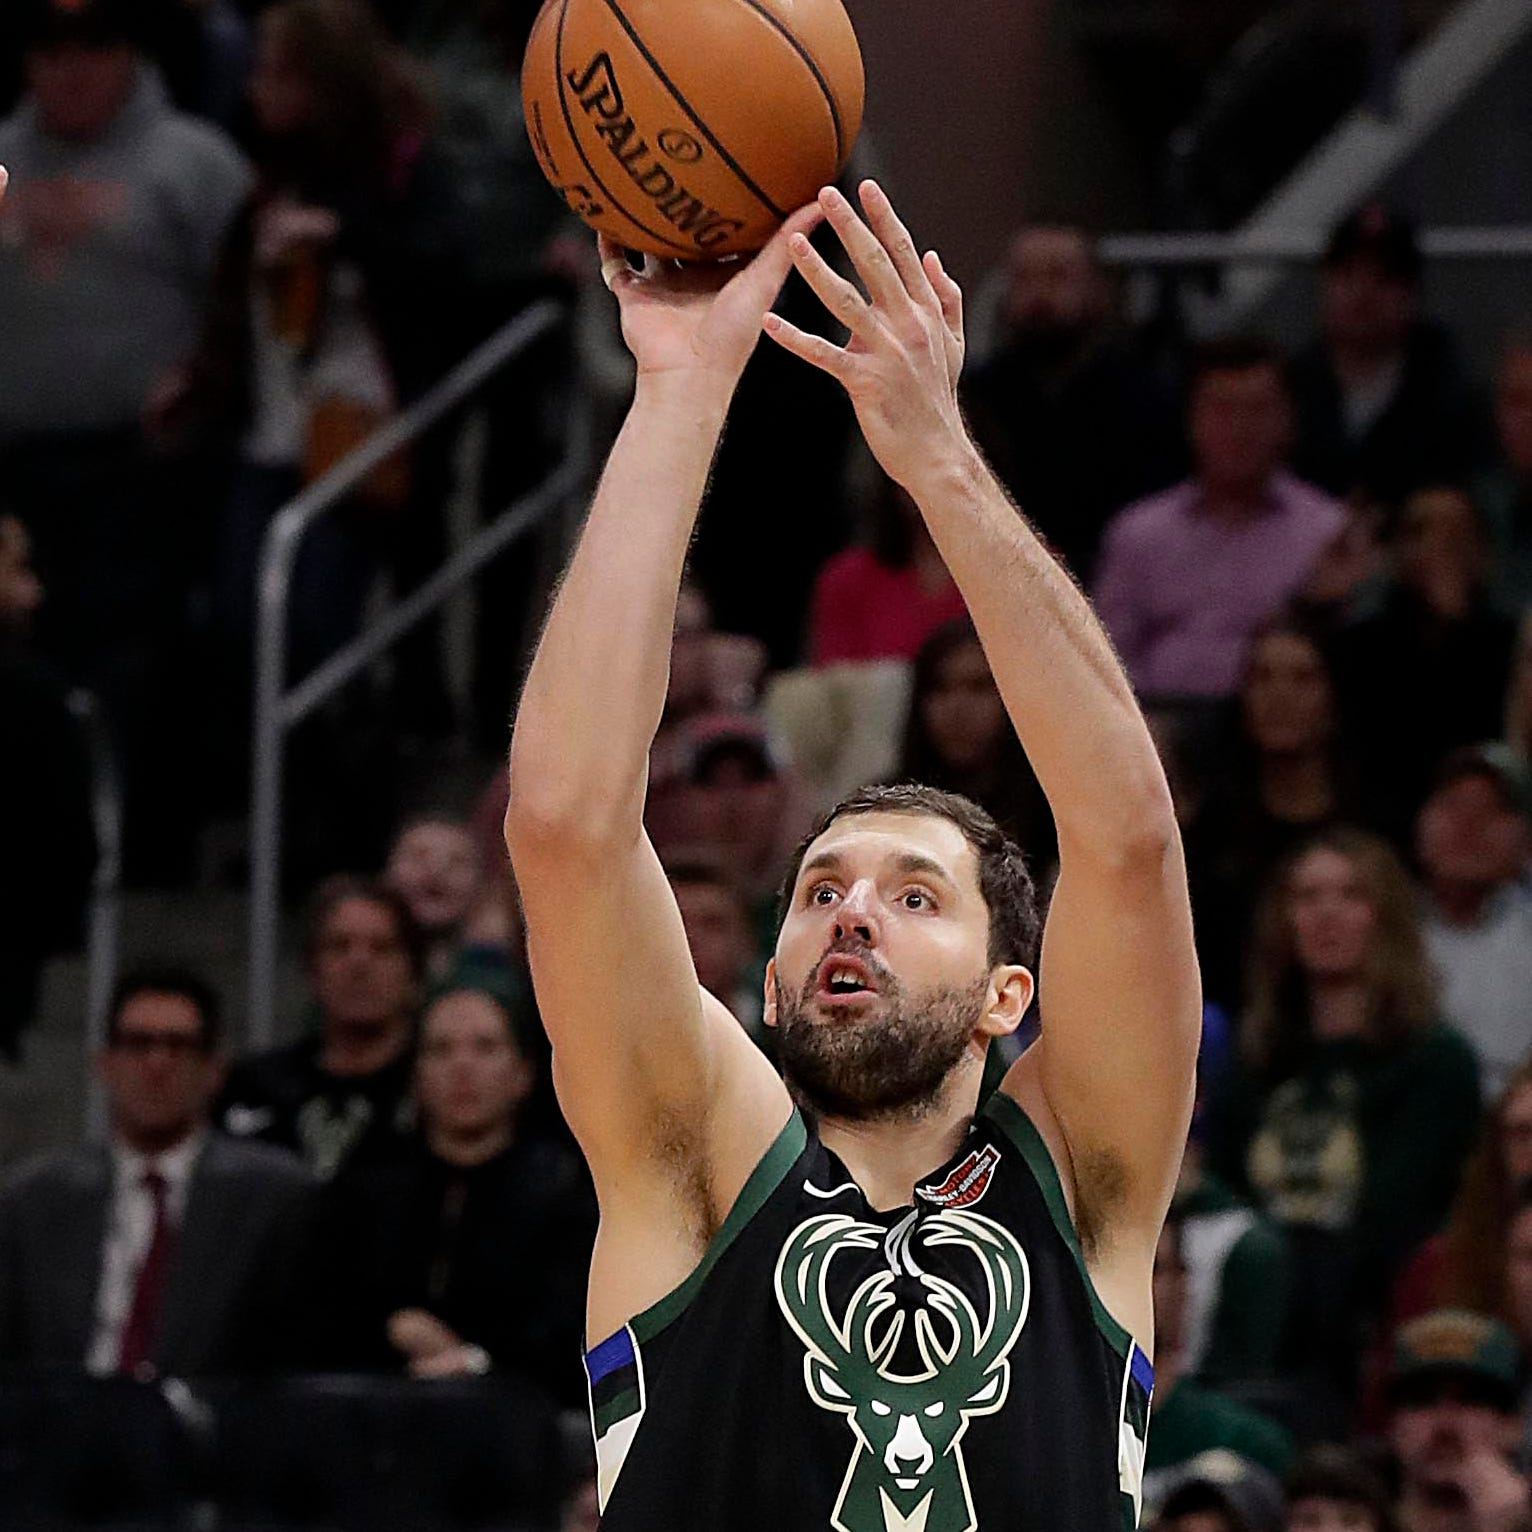 Nikola Mirotic keeps things simple while fitting in during his debut with the Bucks